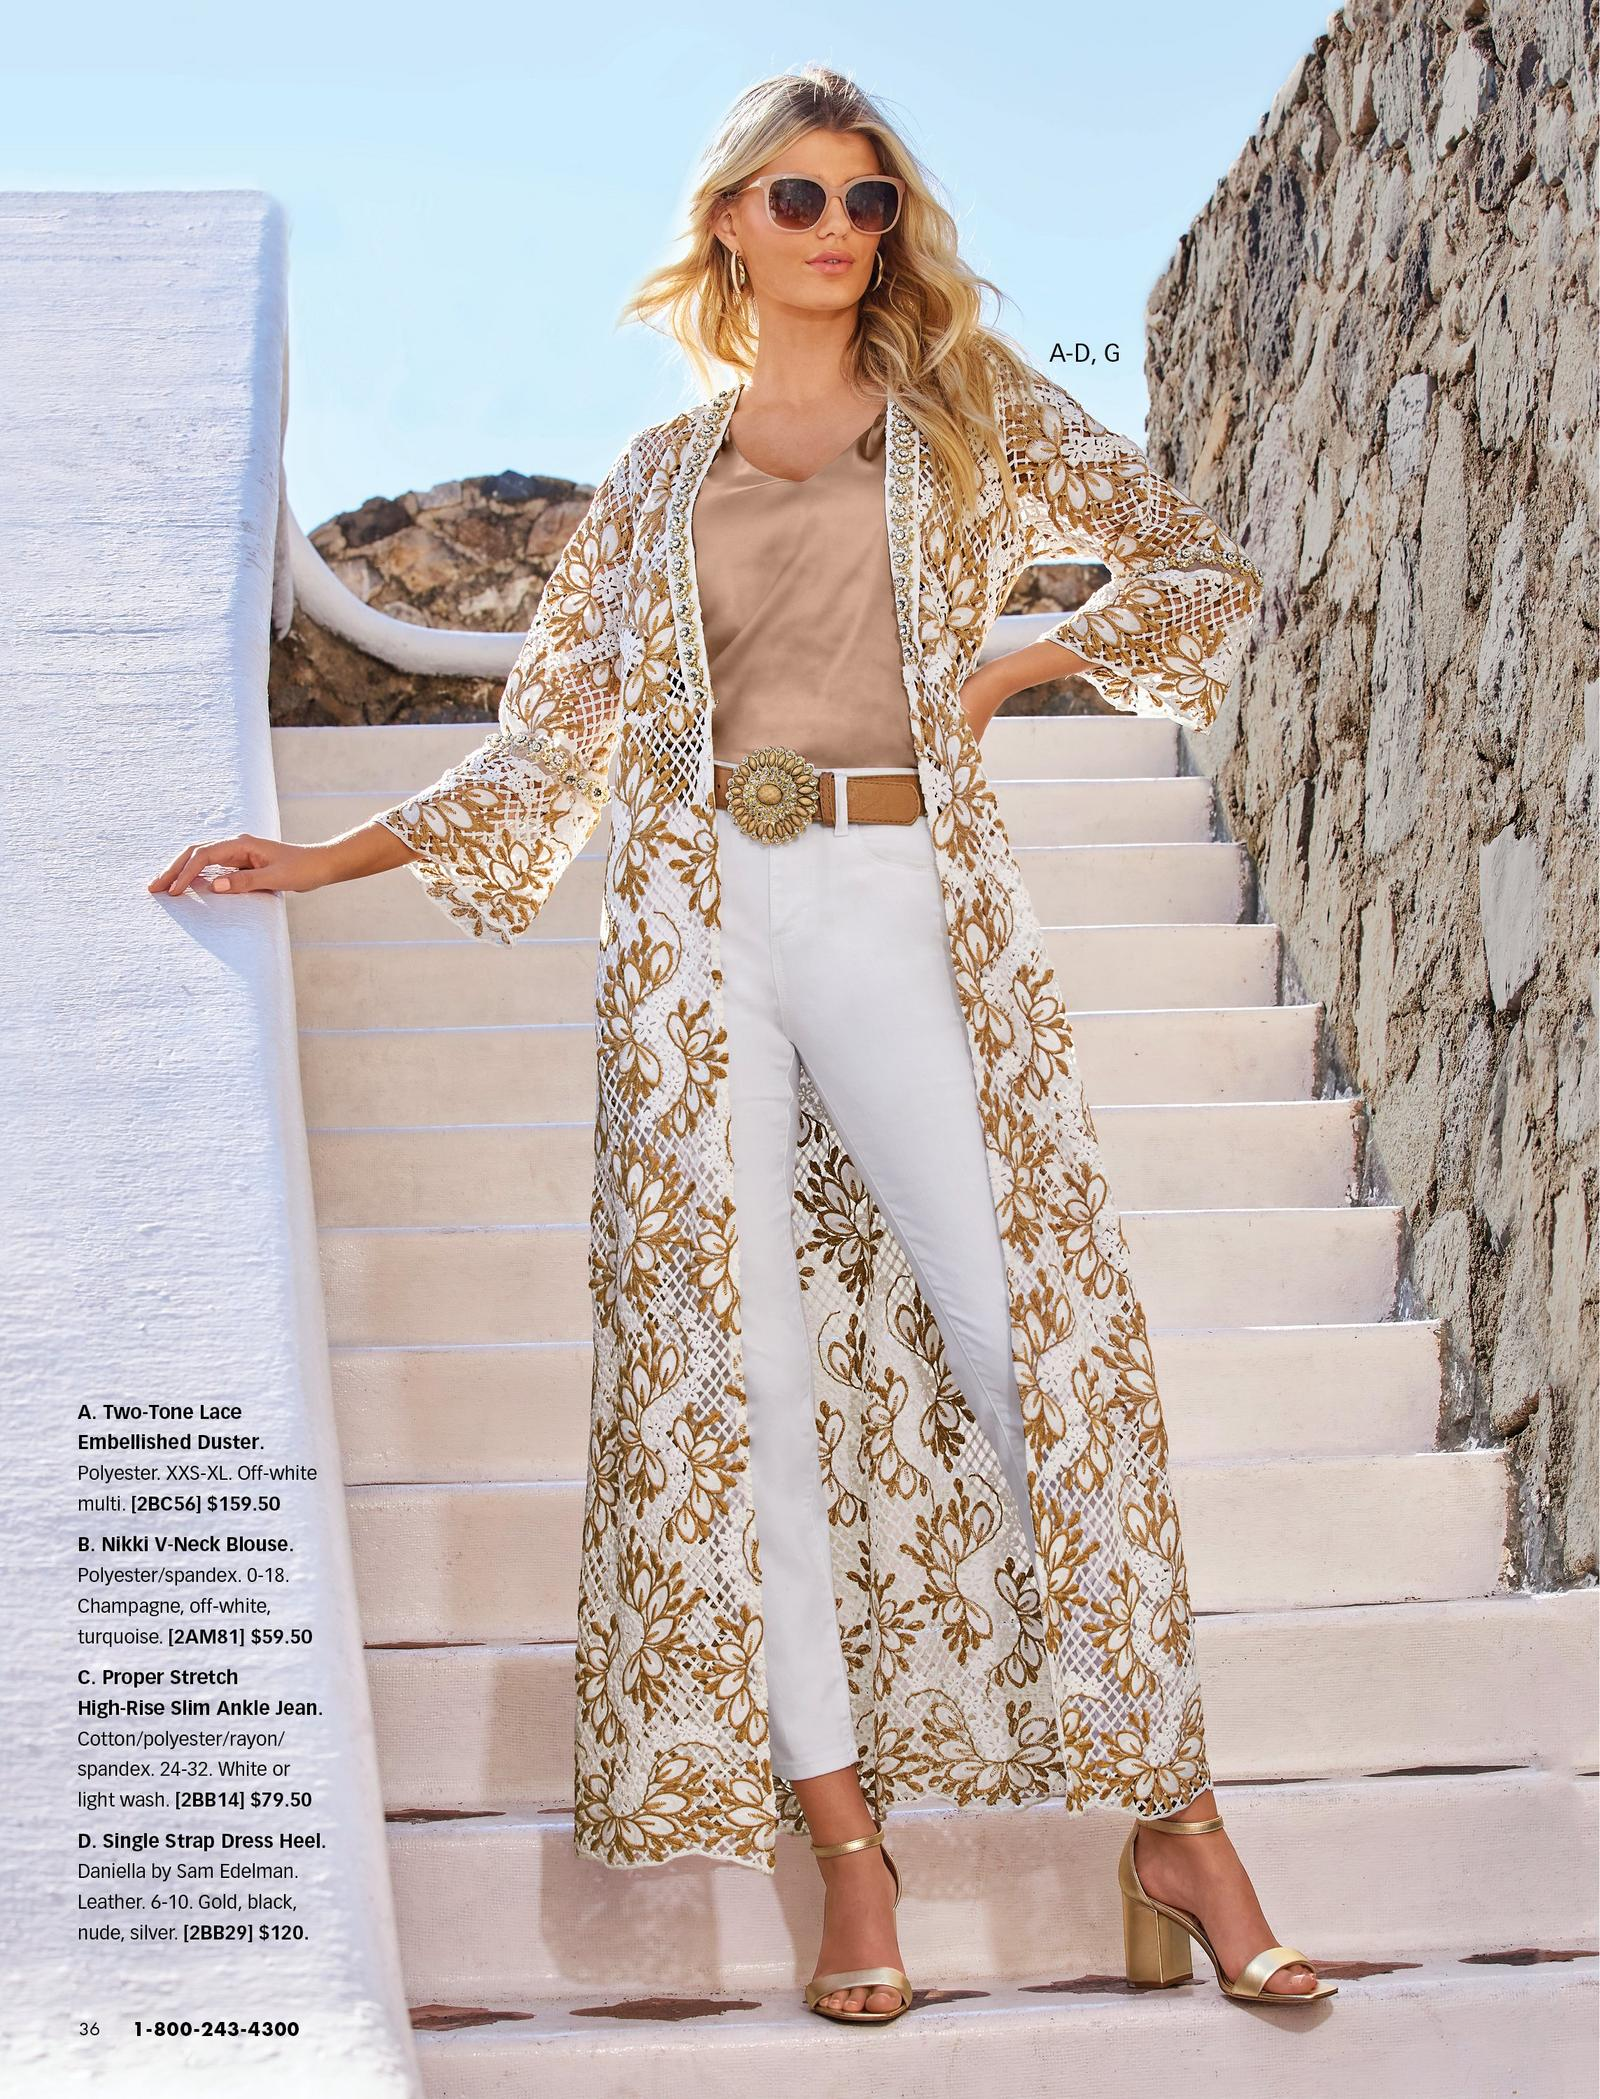 left model wearing a white and gold long lace duster, tan v-neck top, brown embellished belt, white jeans, gold heels, gold hoop earrings, and sunglasses.